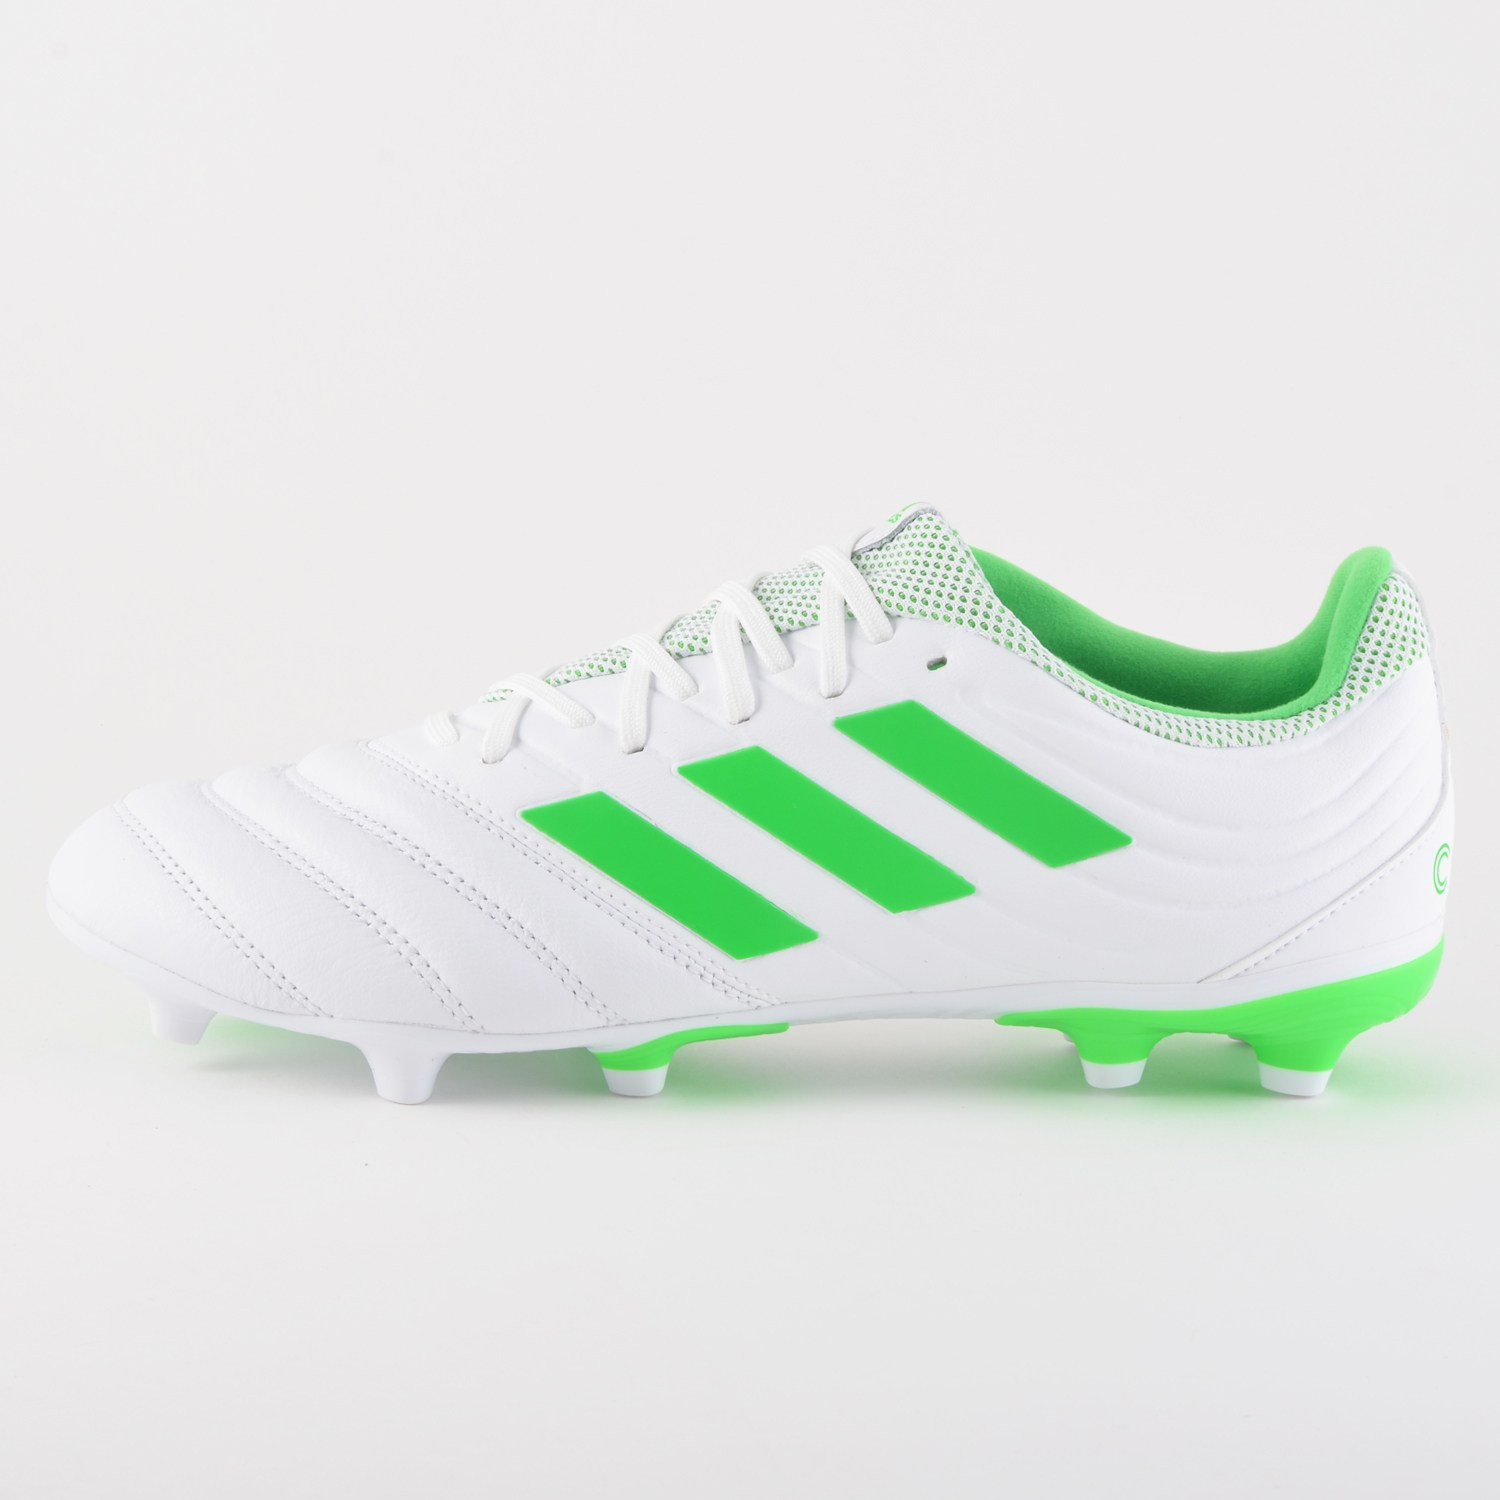 adidas Copa 19.3 Firm Ground Cleats 'Exhibit Pack' (9000023104_37064)